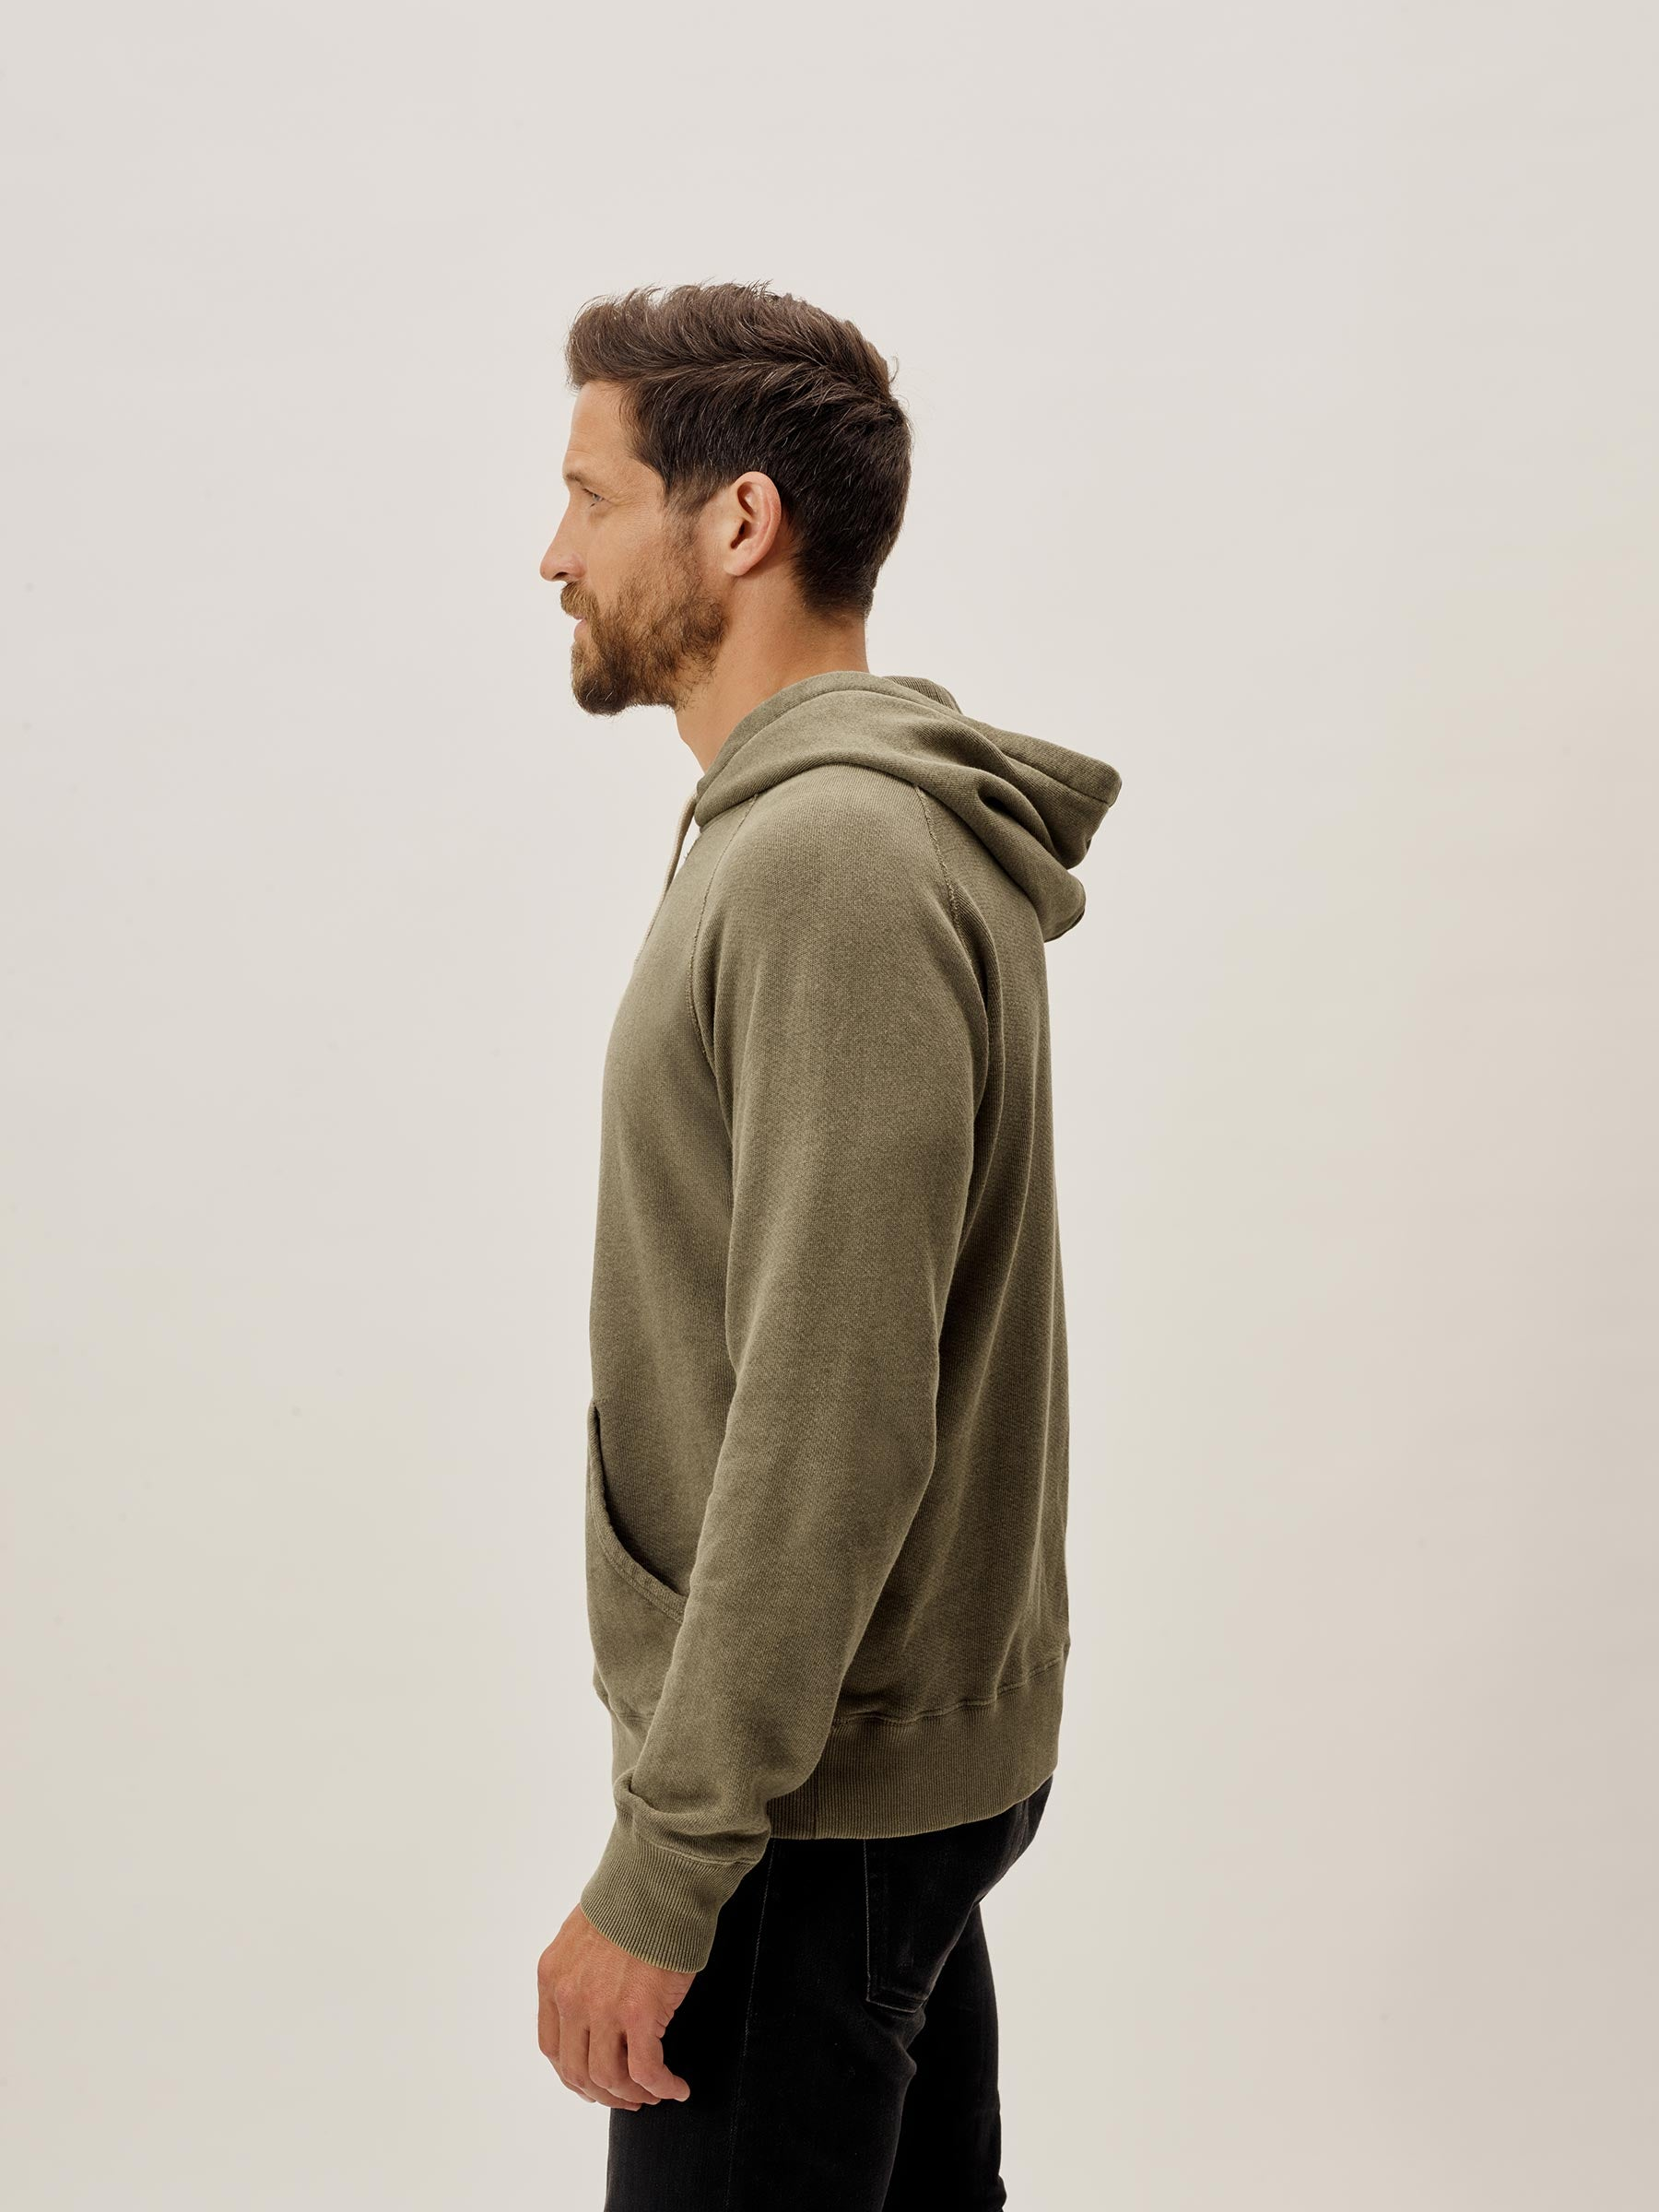 Buck Mason - Drab Sunfade Heathered Twill Terry Vintage Hooded Raglan